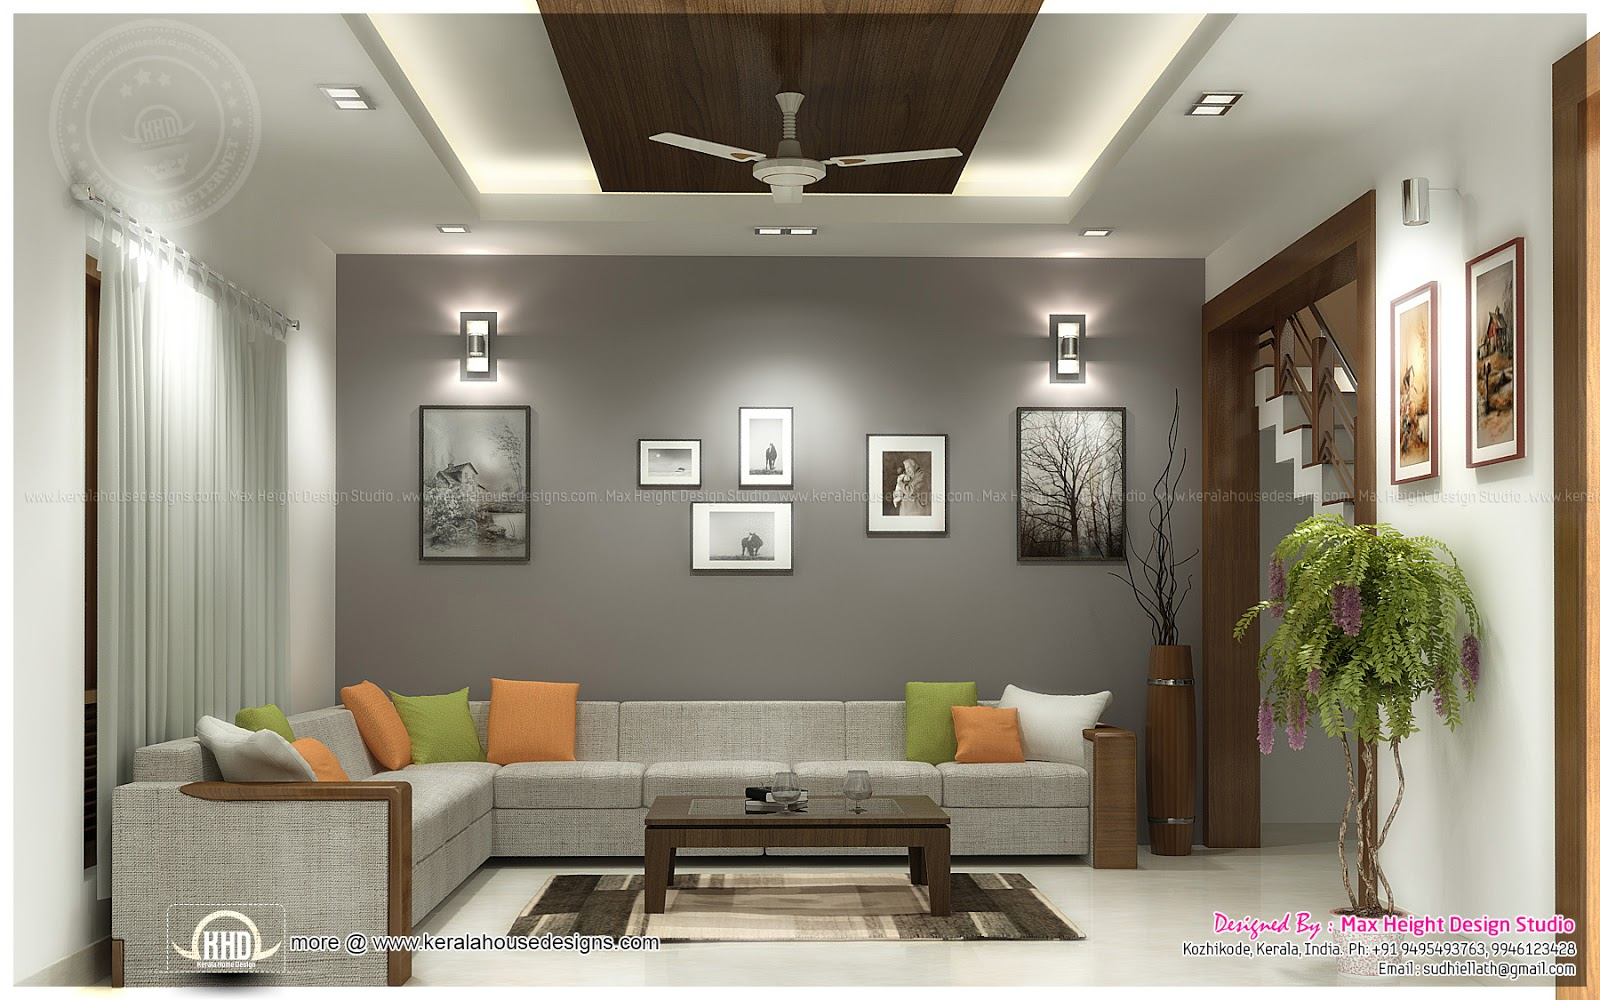 Beautiful interior ideas for home kerala home design and for Home interiors ideas photos